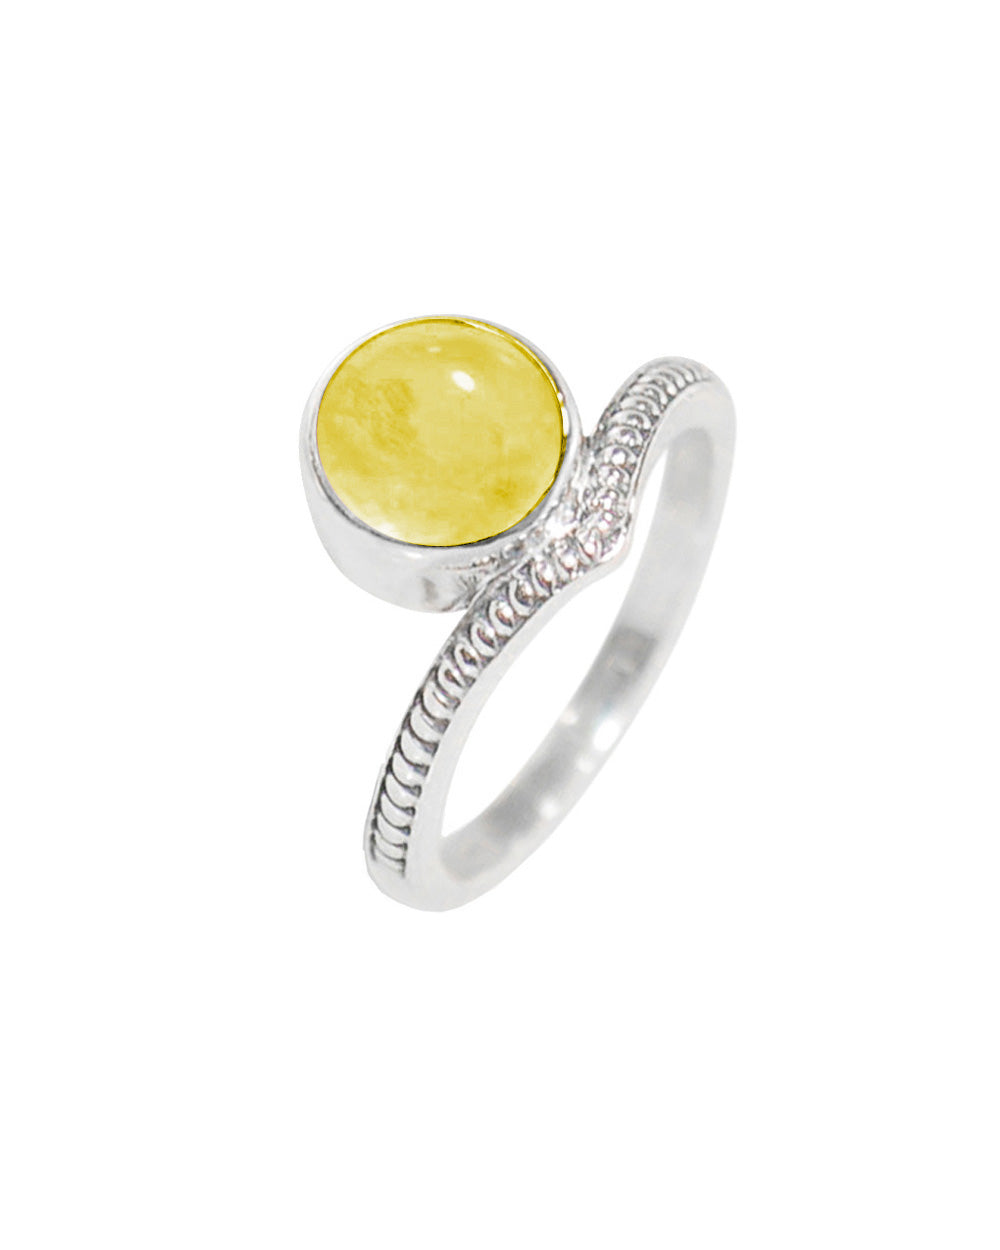 Enlightened Sterling Silver Ring - Citrine